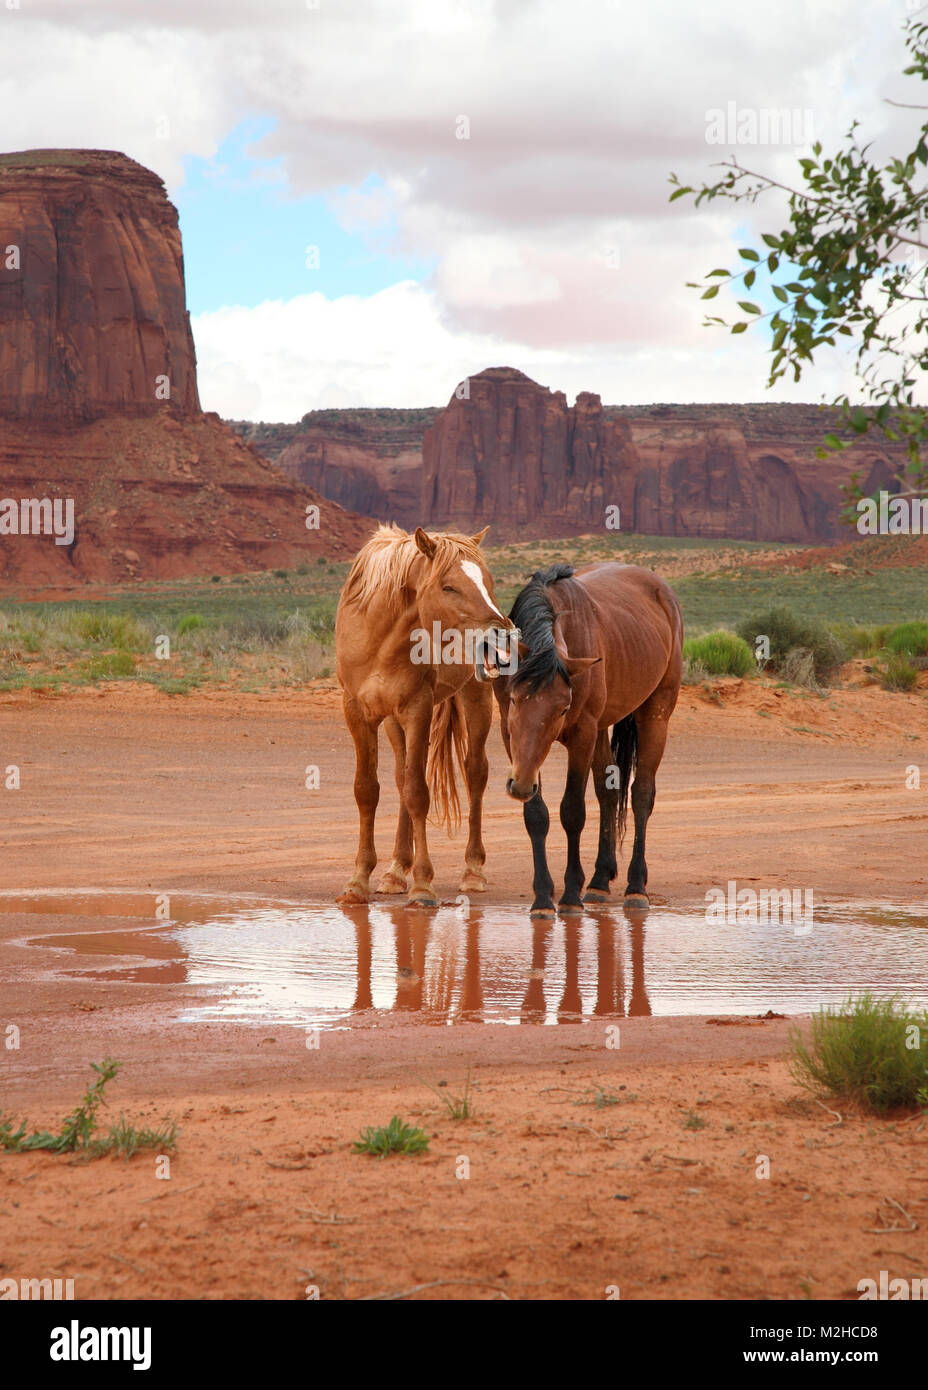 two funny wild horses at watering hole, one appears to be yelling - Stock Image